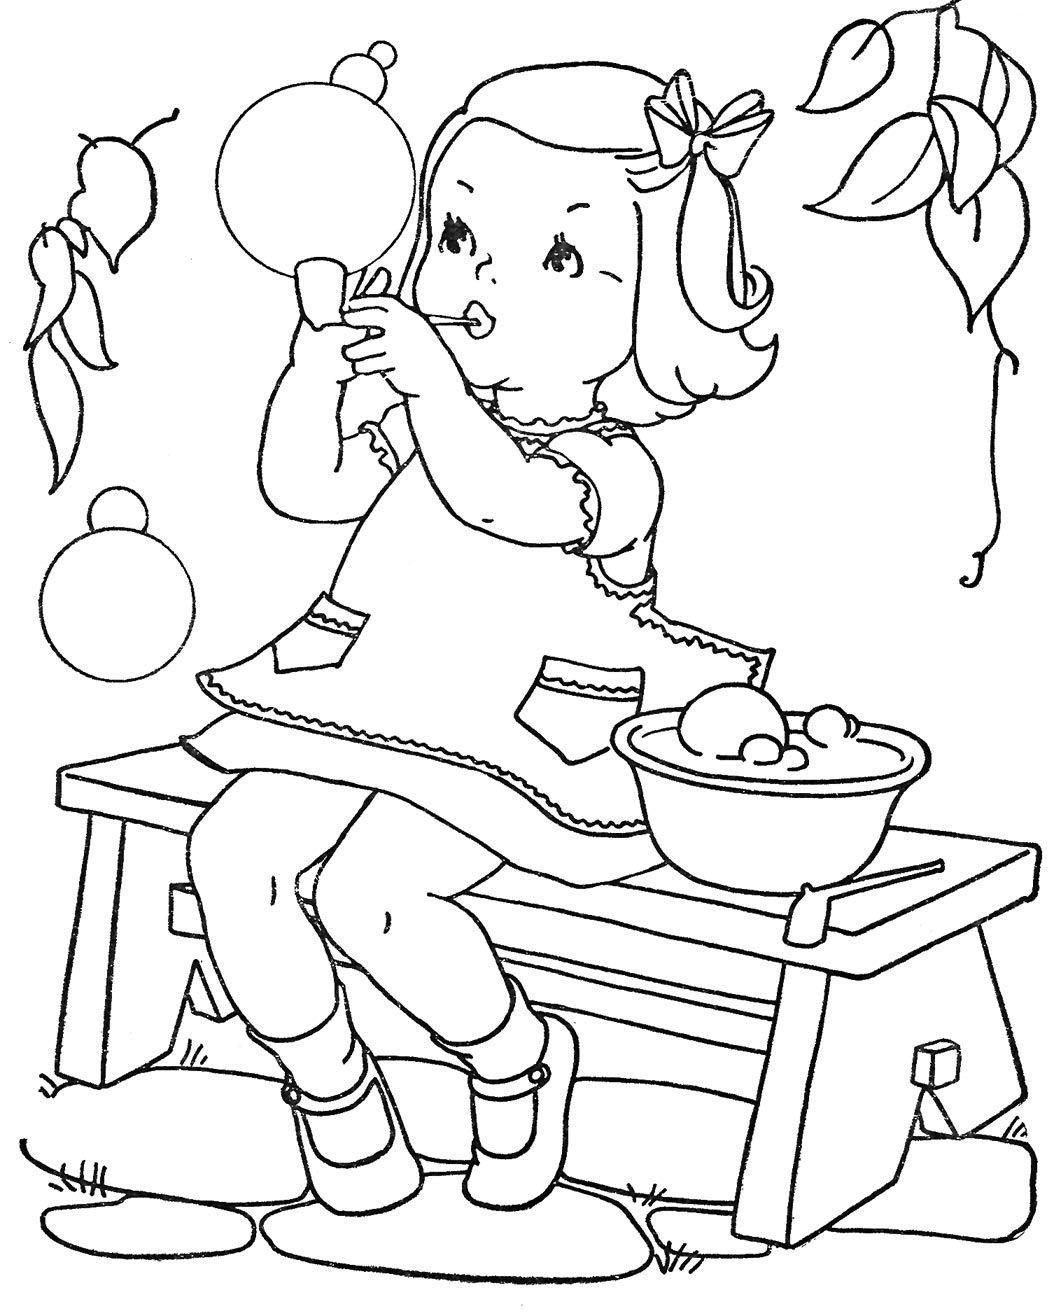 20 Vintage Coloring Book Images - Free to print! Maybe use ...